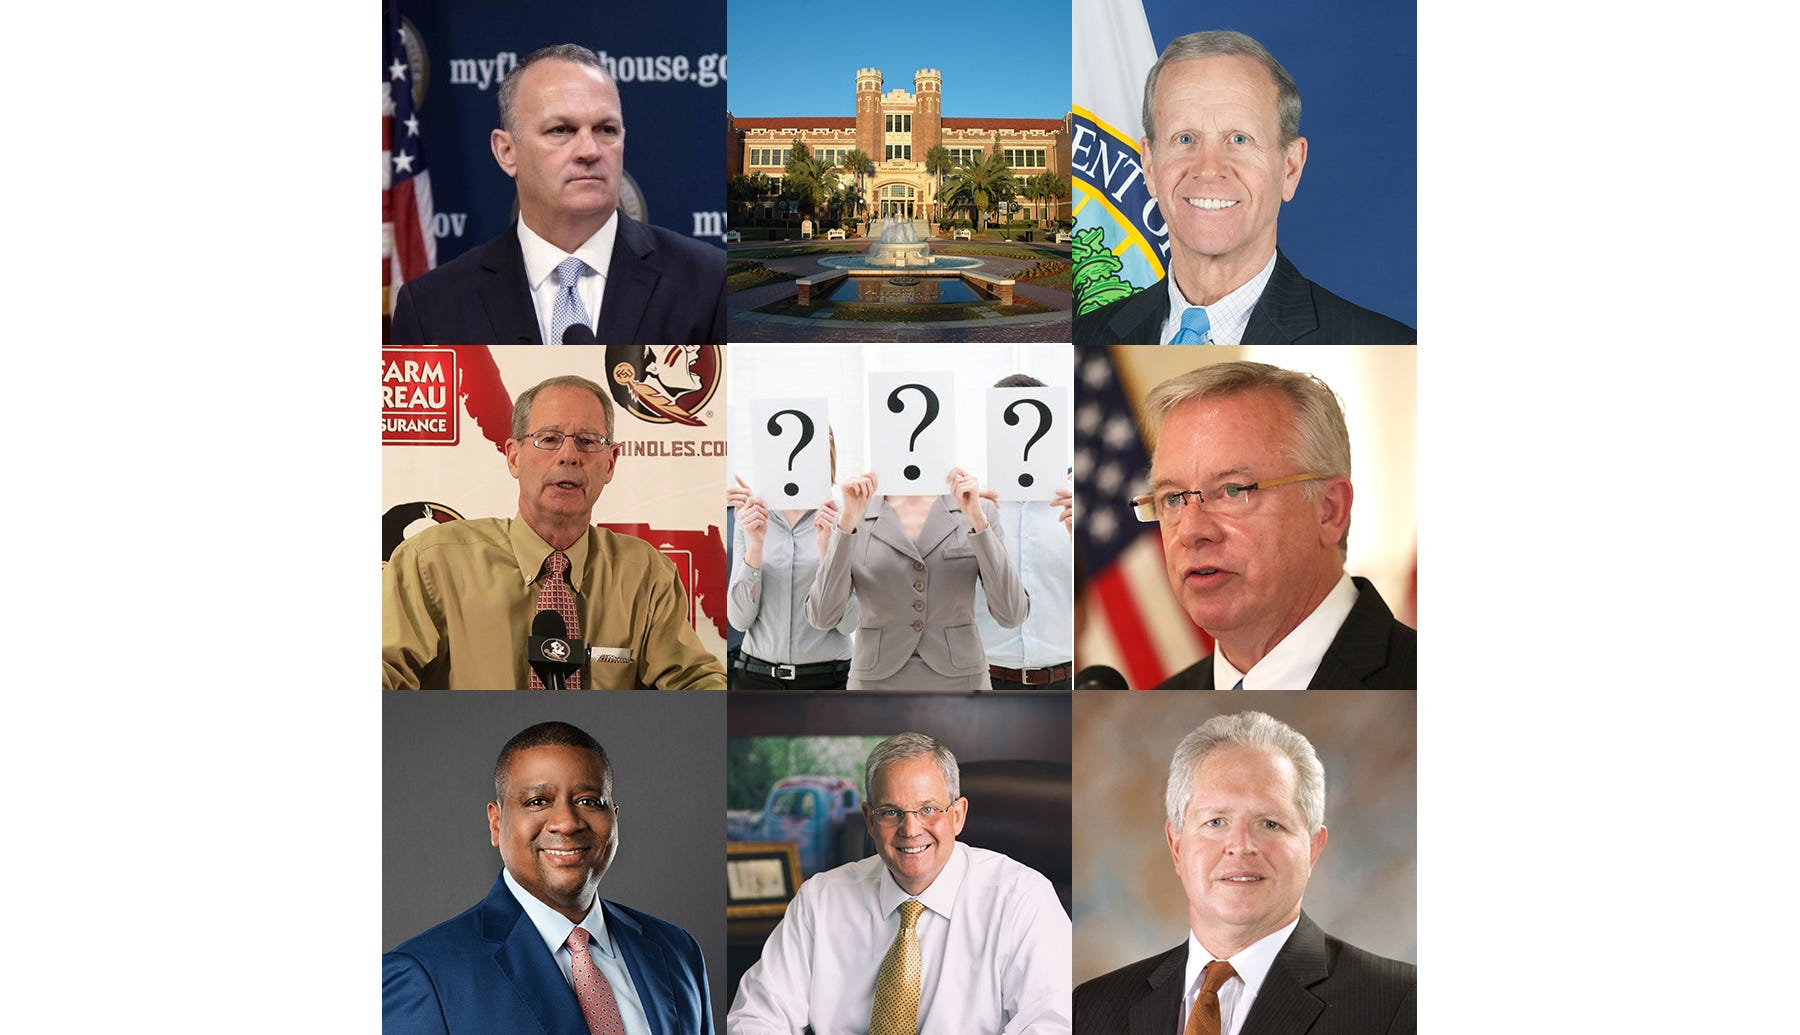 Behind the scenes in the FSU presidential search: Familiar faces emerge as possible contenders